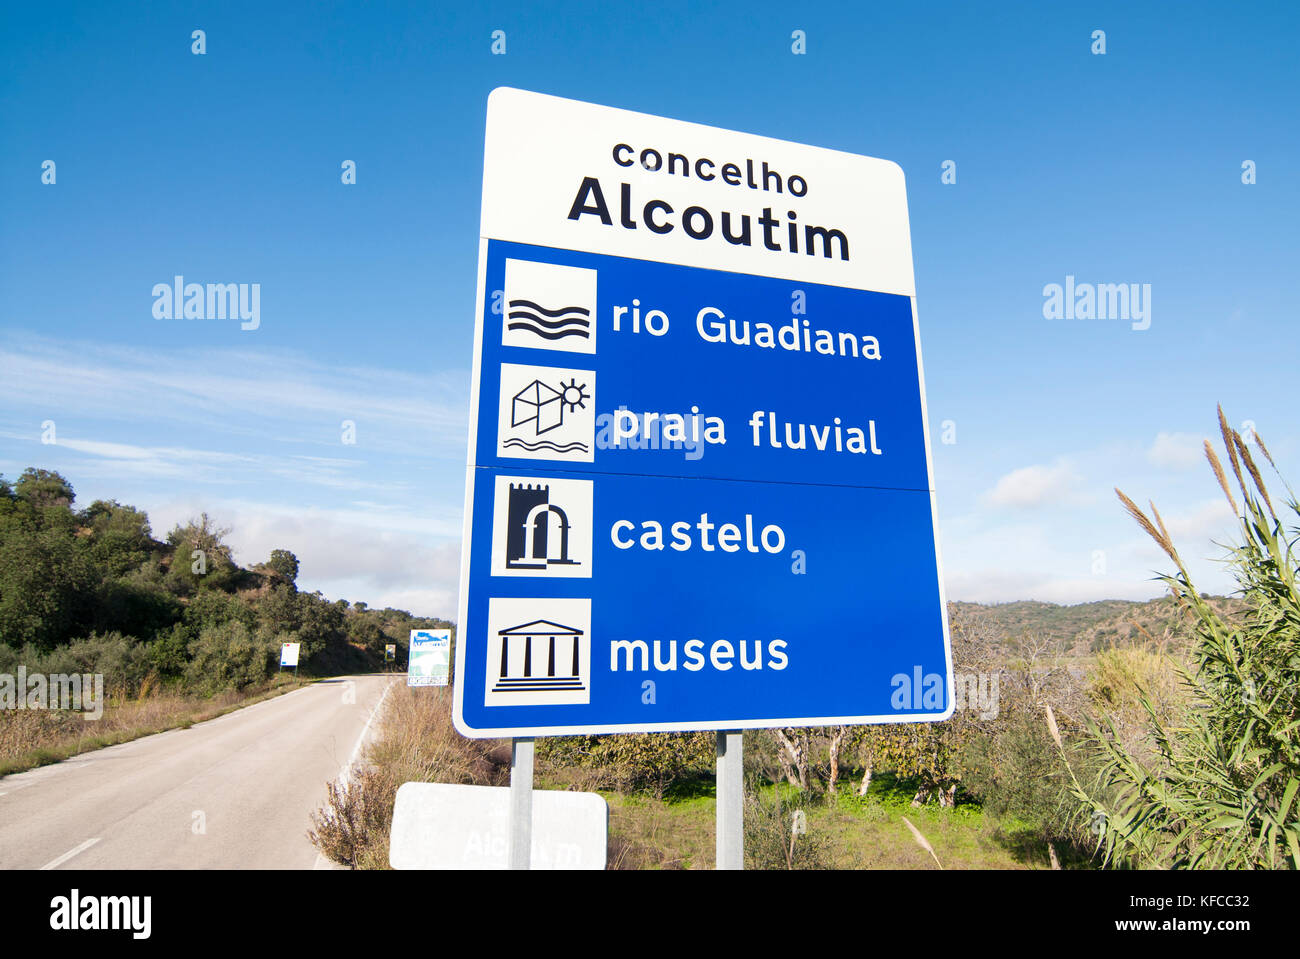 Street signal at rural road leading to Alcoutim indicating the local attractions - Stock Image